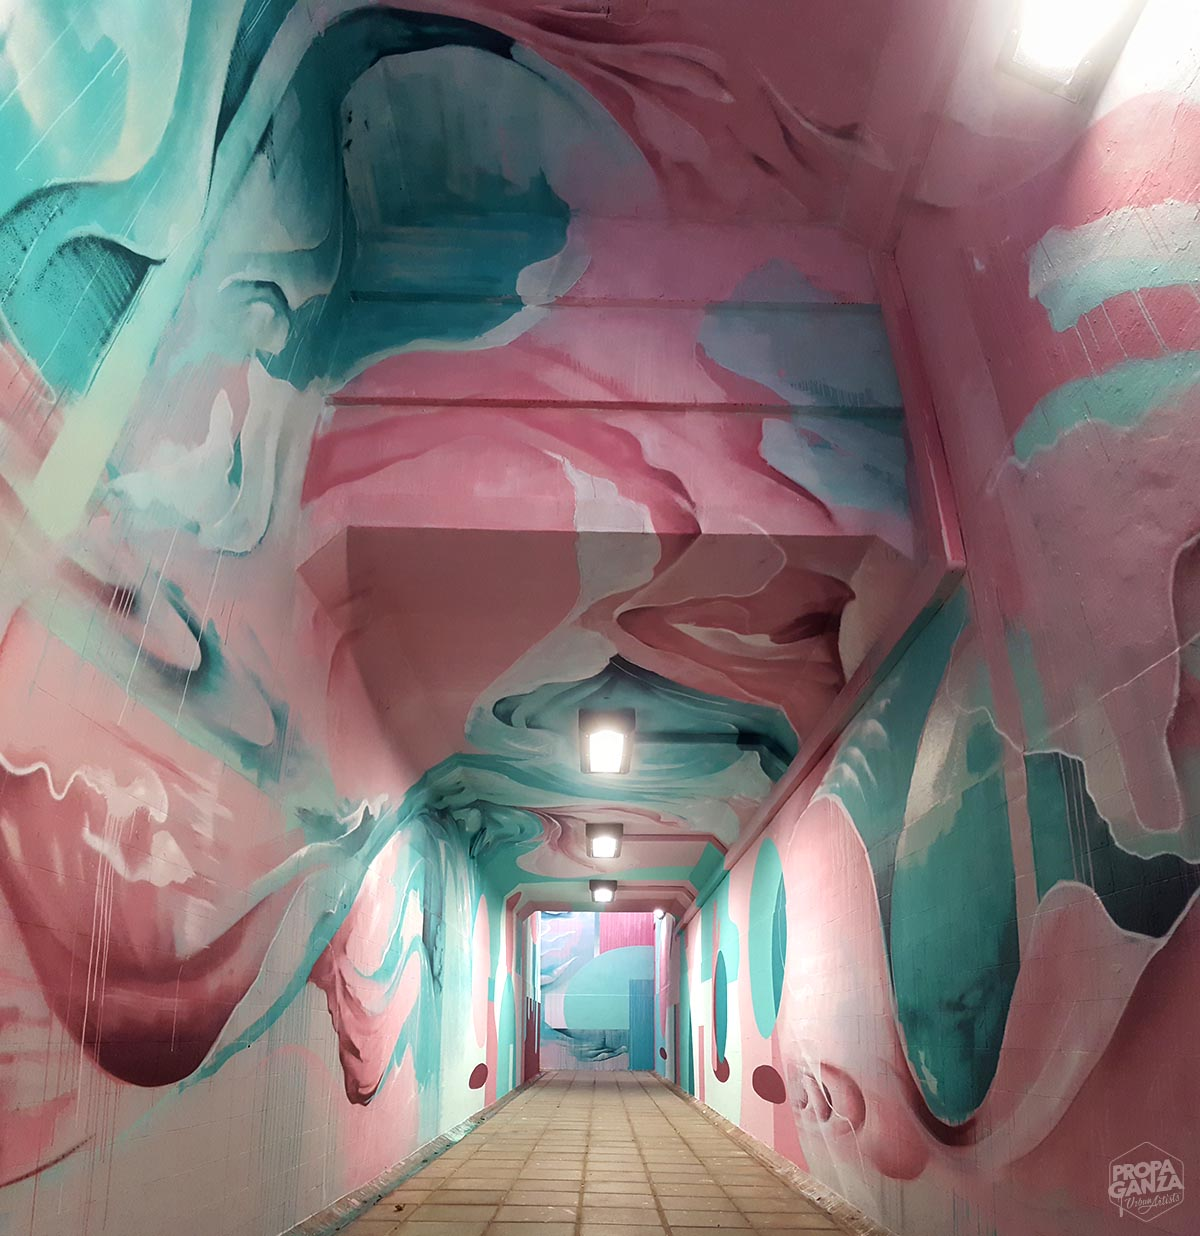 https://www.propaganza.be/wp-content/uploads/2019/04/adrien-roubens-abstract-paint-graffiti-street-art-vegetal-wave-tunnel-propaganza-hendlisz-pink-sixties-60-contemporary-1-1.jpg